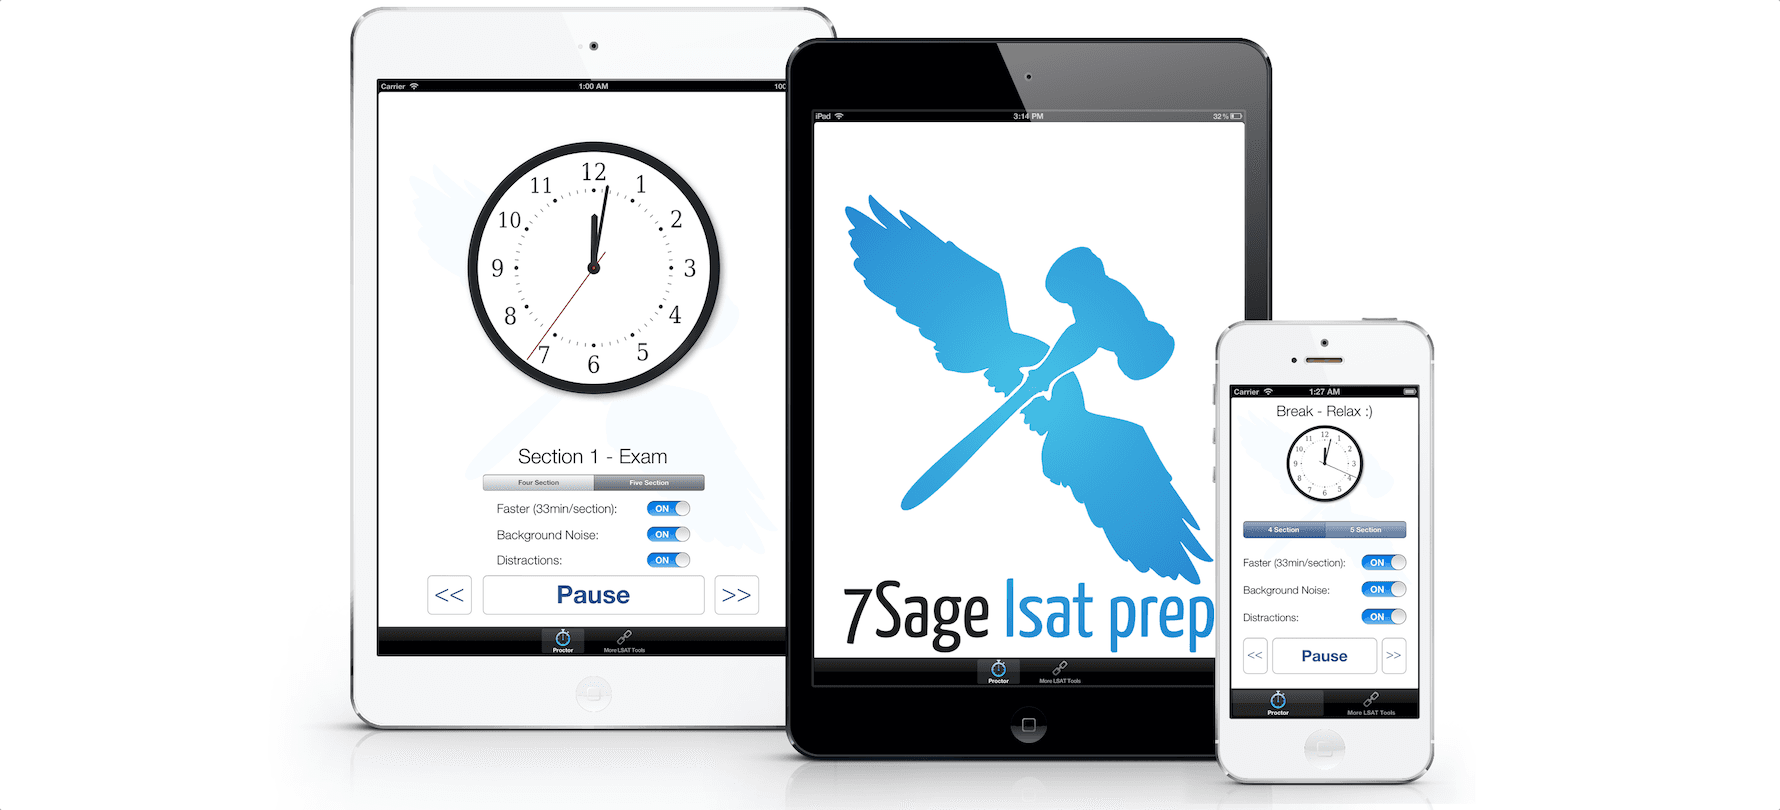 LSAT-Proctor-App-iPhone-iPad